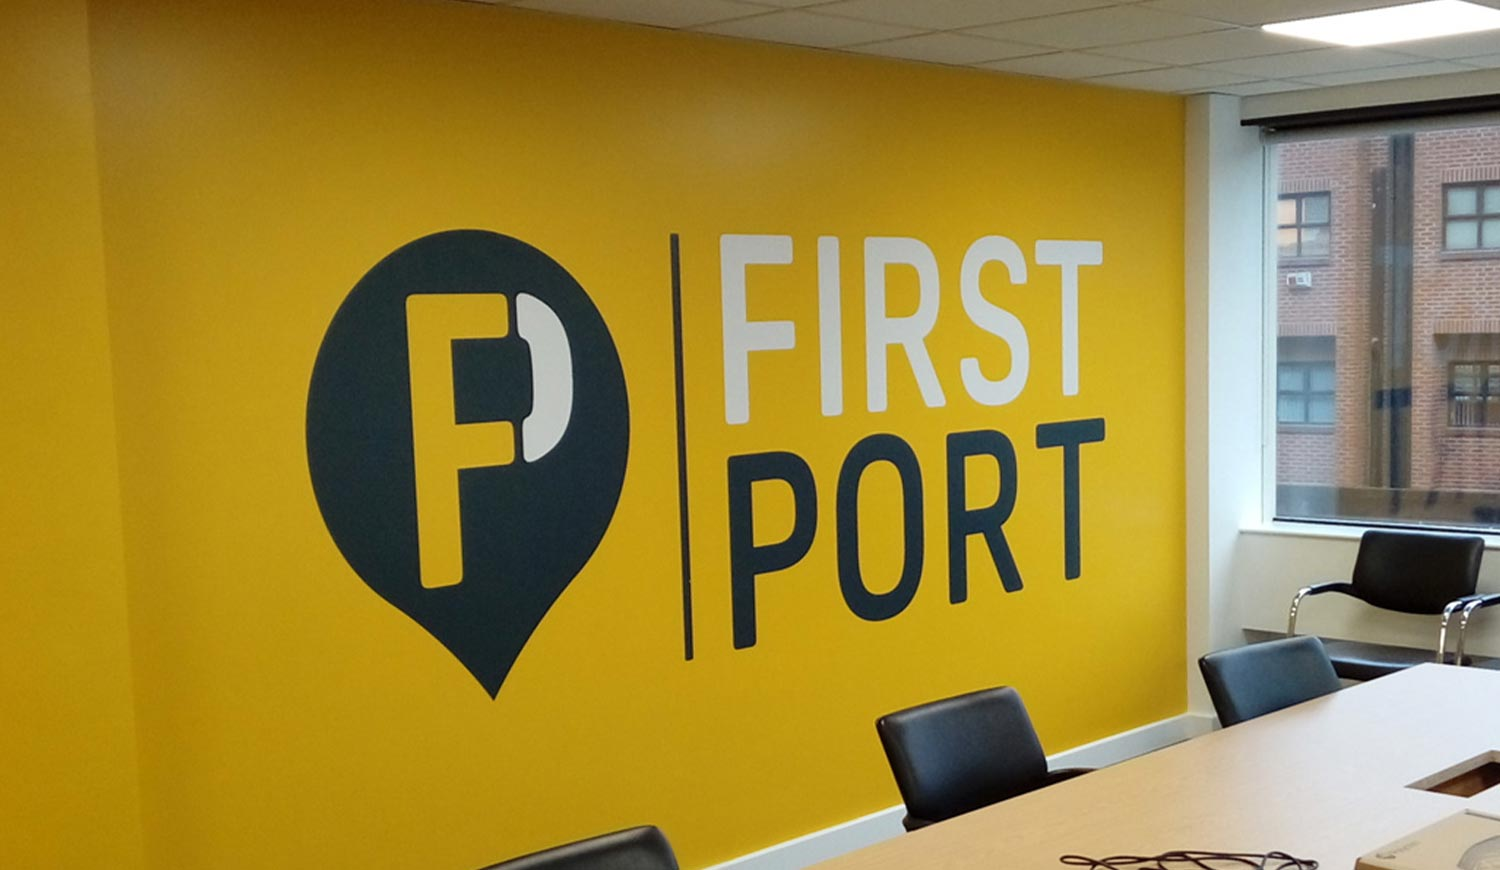 Logo Wall Print in Office - Boarding Room Wall Graphics